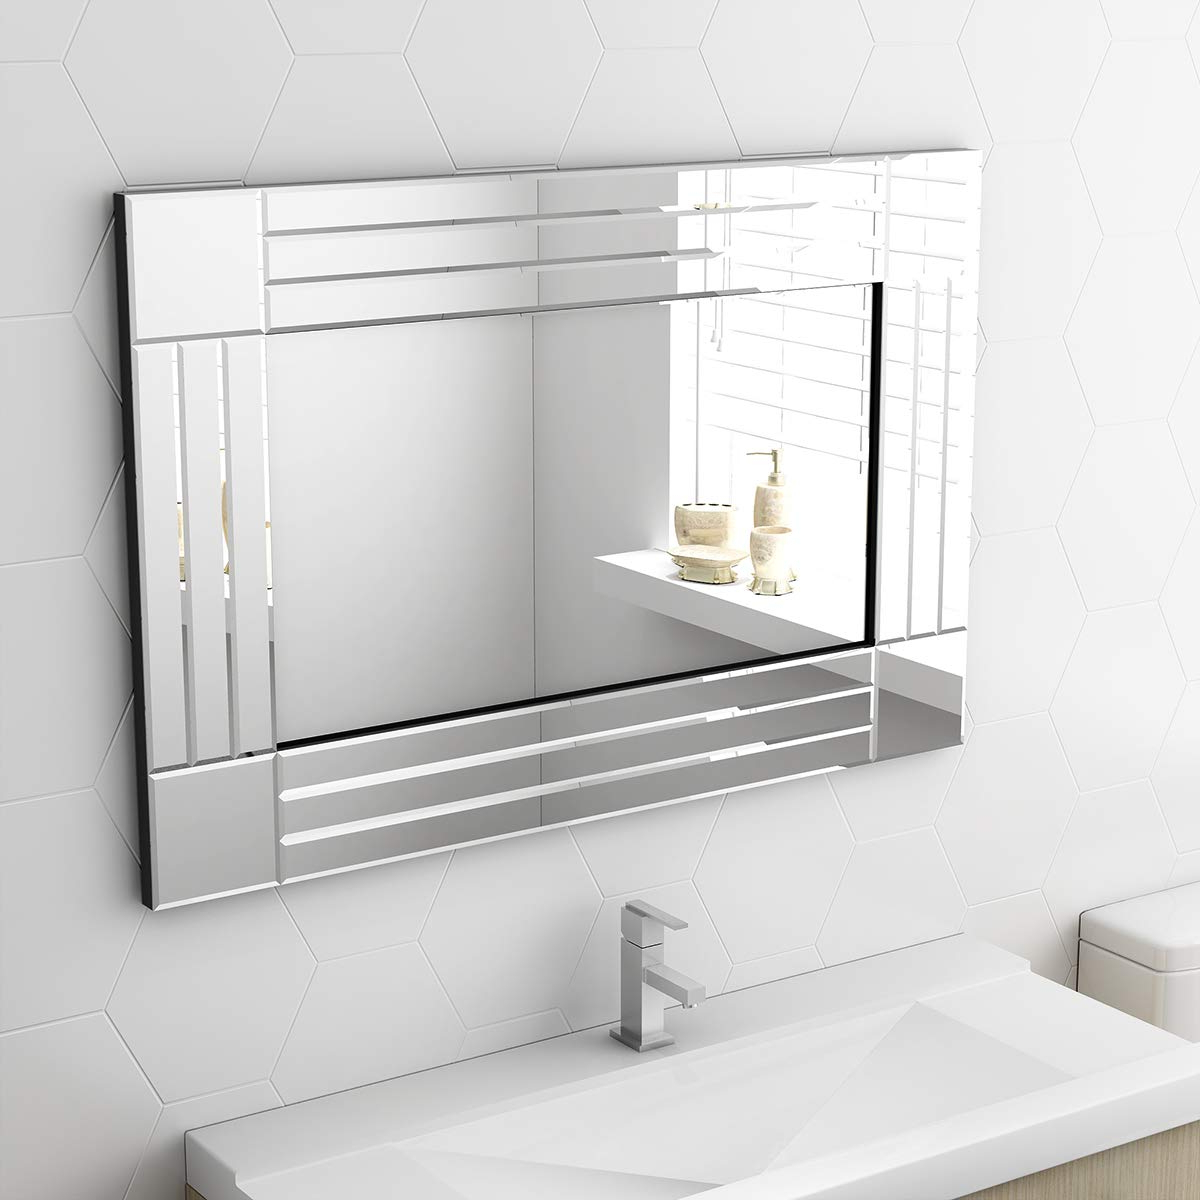 Paldin Wall Hung Mirrors, Modern Wall Hung Bathroom Mirrors Large Inside Well Liked Large Bathroom Wall Mirrors (View 5 of 20)